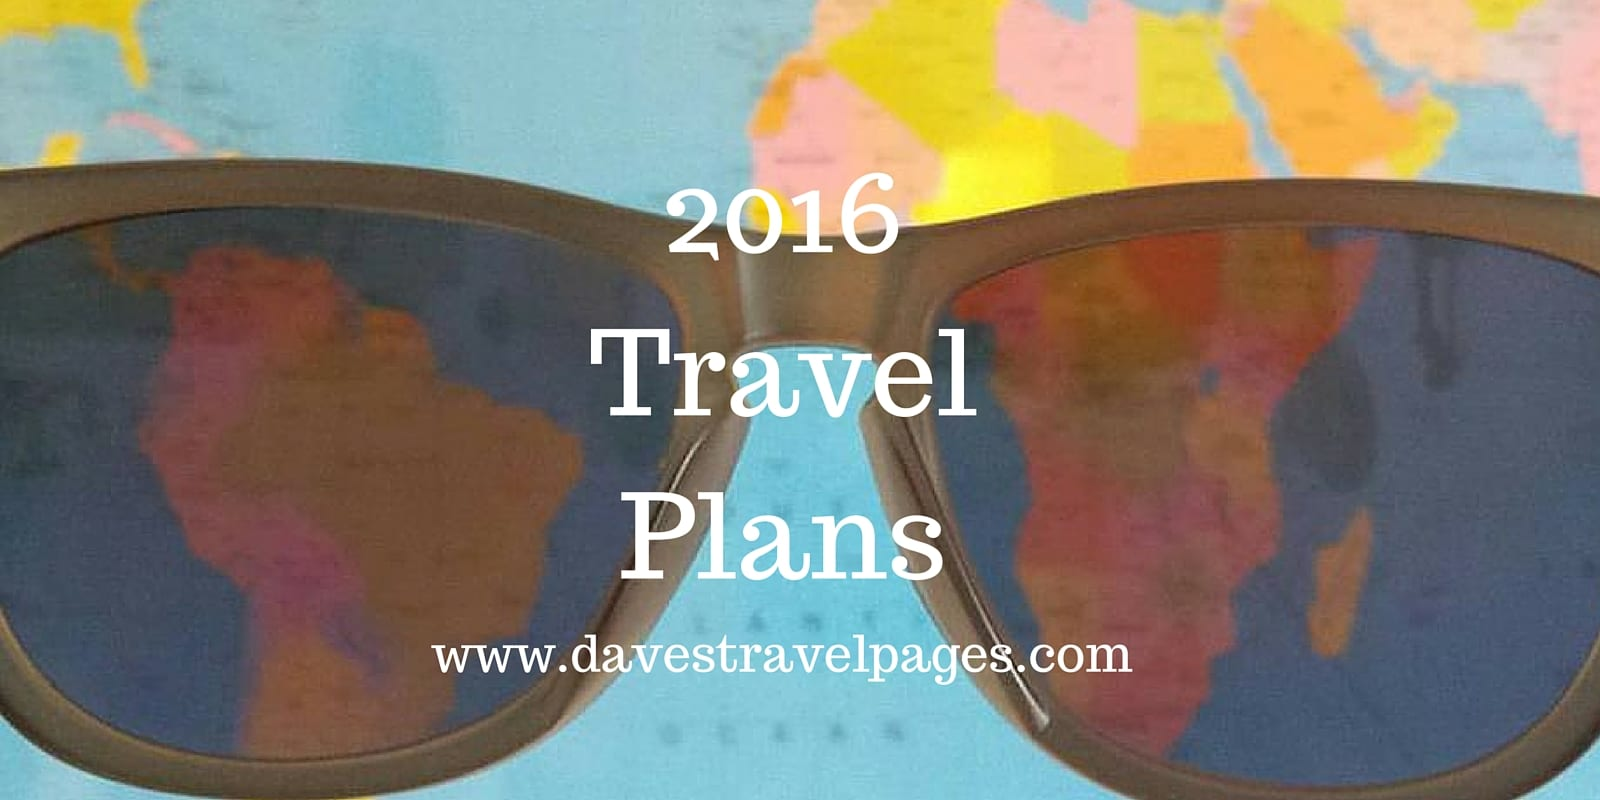 My 2016 travel plans include a number of countries I have never visited before. Albania, Iceland, Macedonia, and Kosovo will all be new to me, and I look forward to seeing and learning more about them. Read on to find out more about my 2016 travel plans.